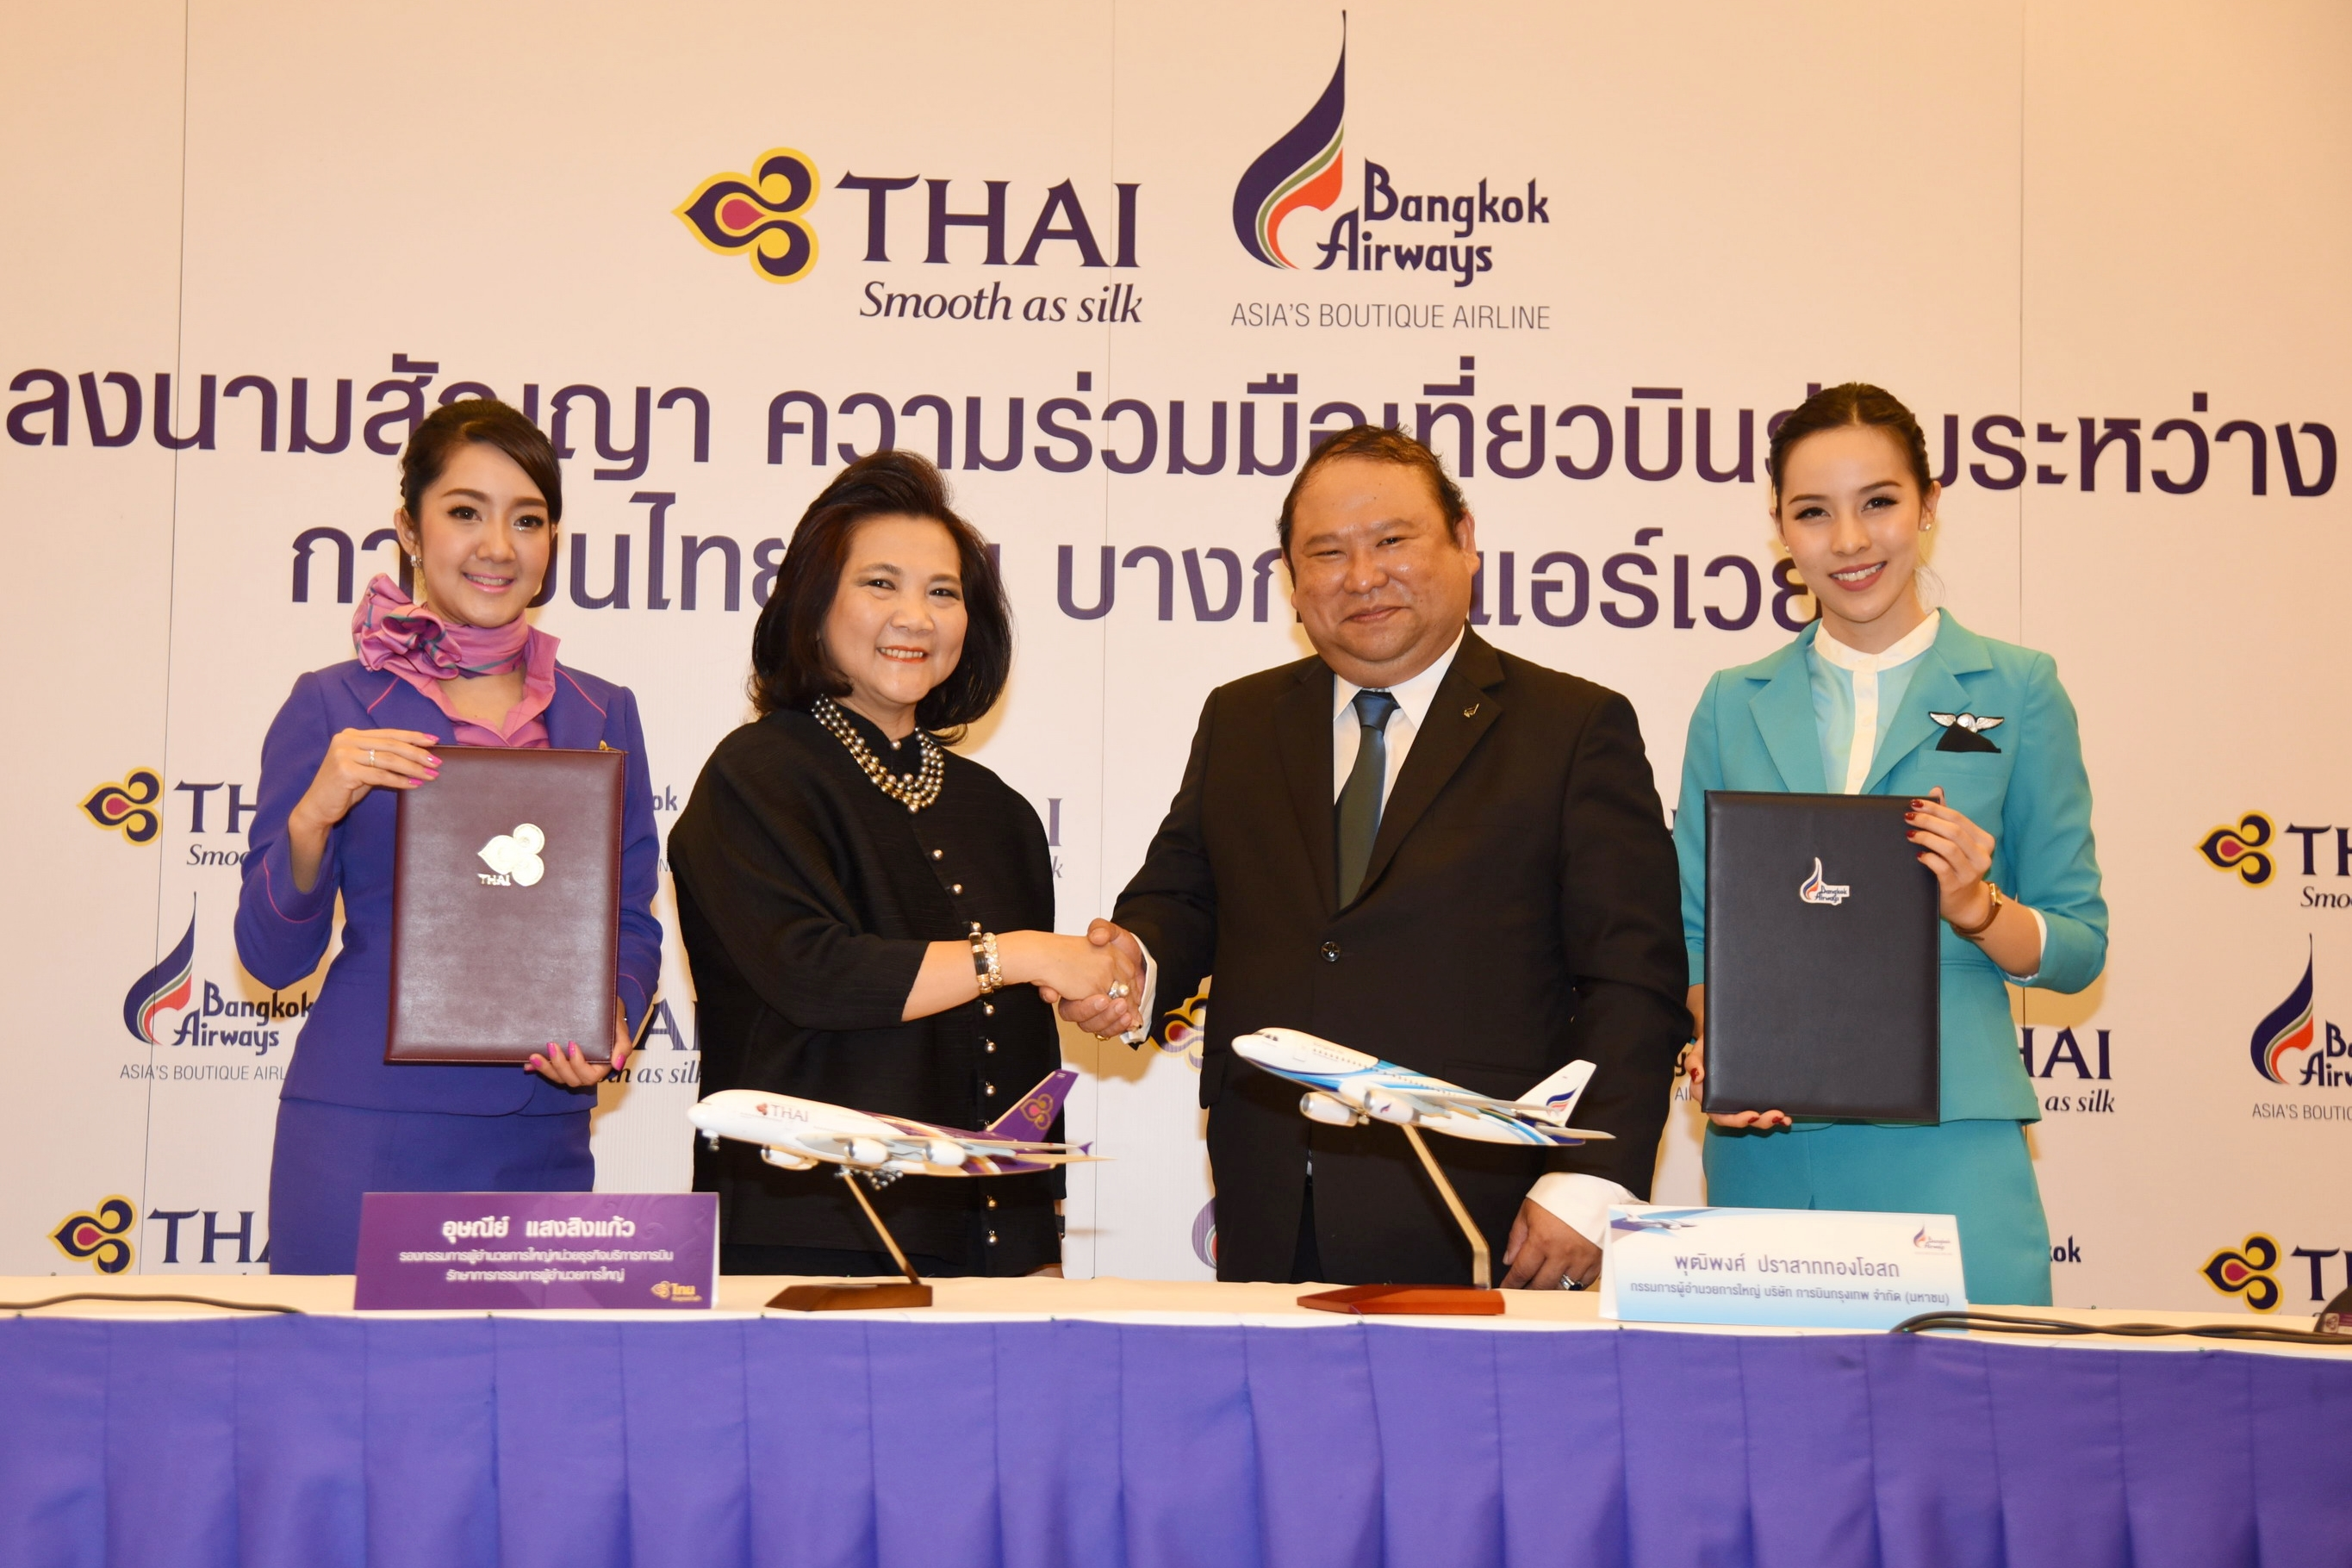 THAI and Bangkok Airways Codeshare Agreement